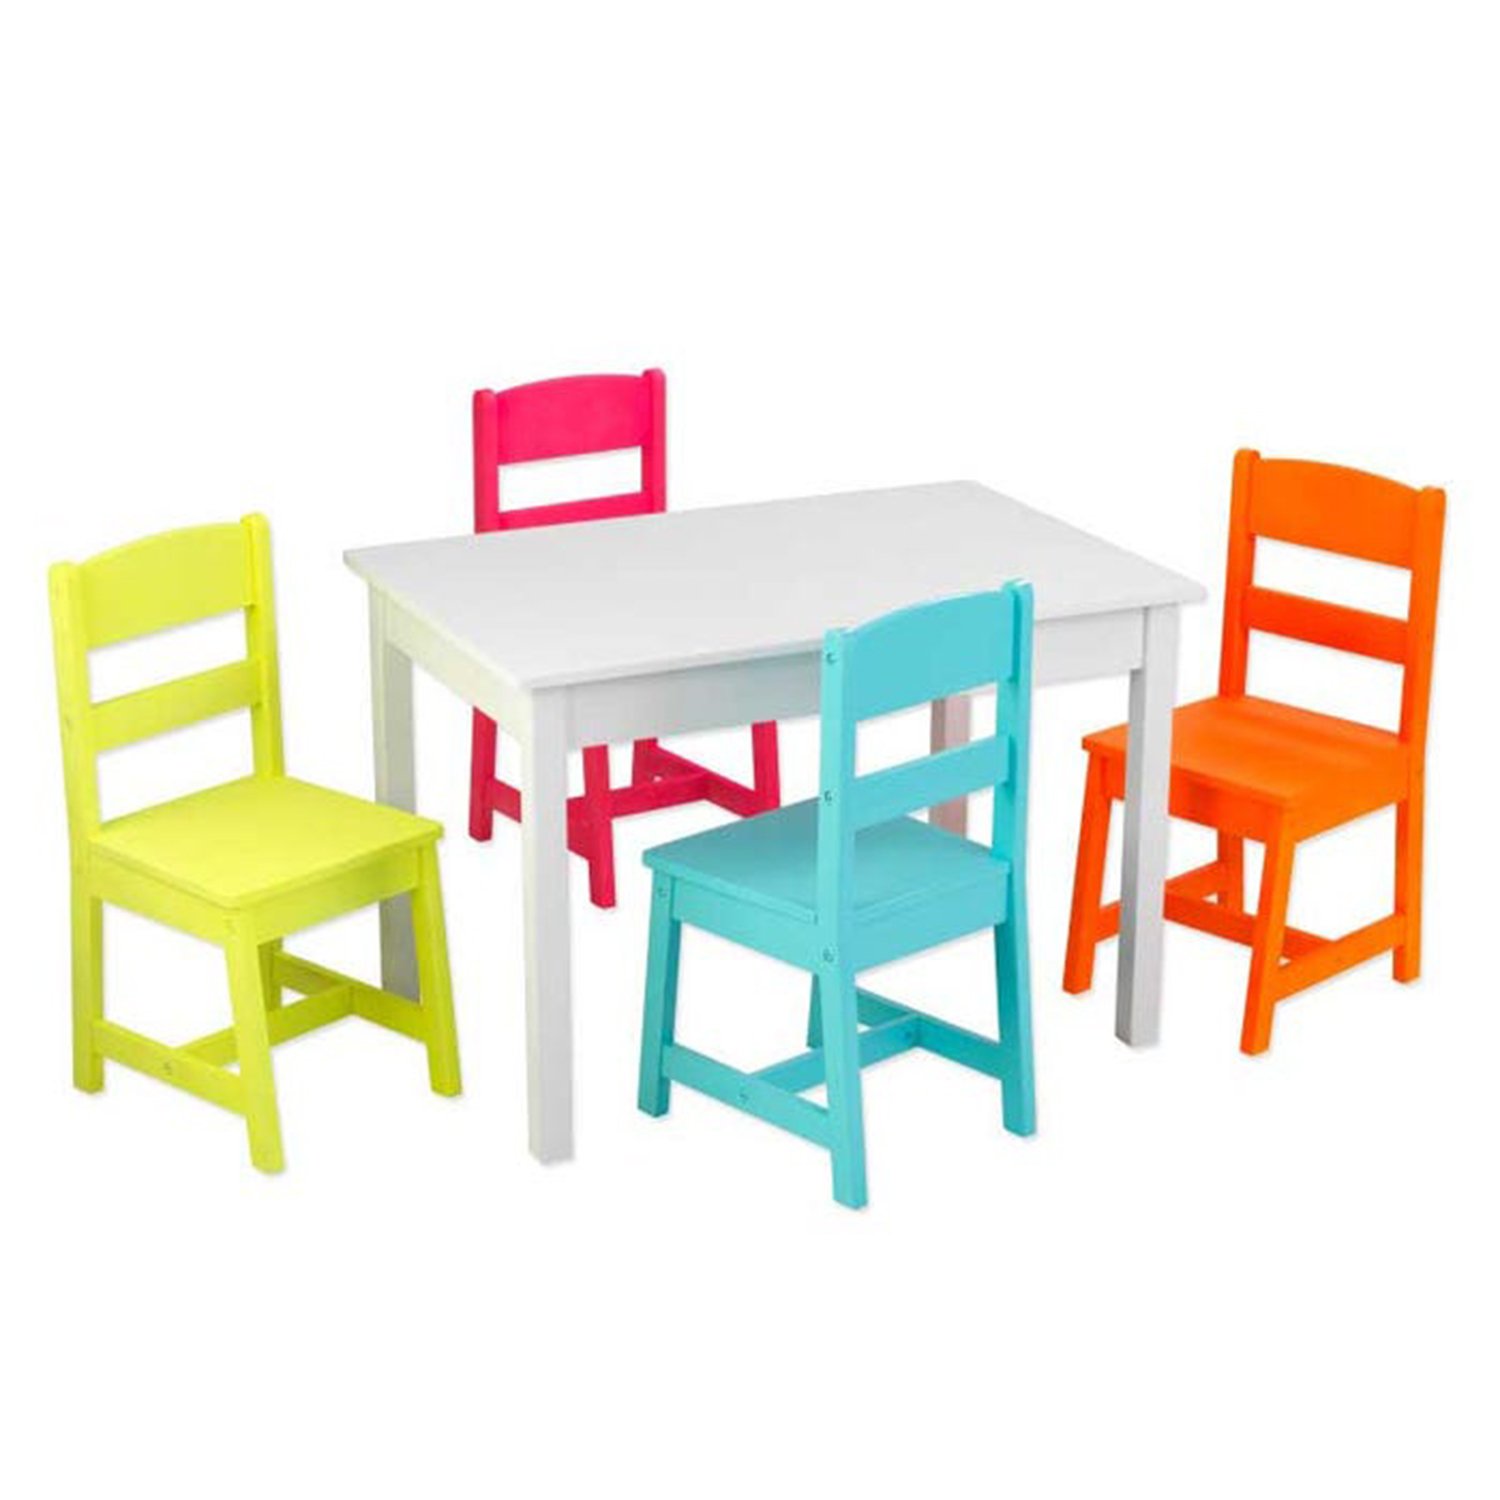 KidKraft Kids Wooden Highlighter Table and Four Chair Set, Multicolored